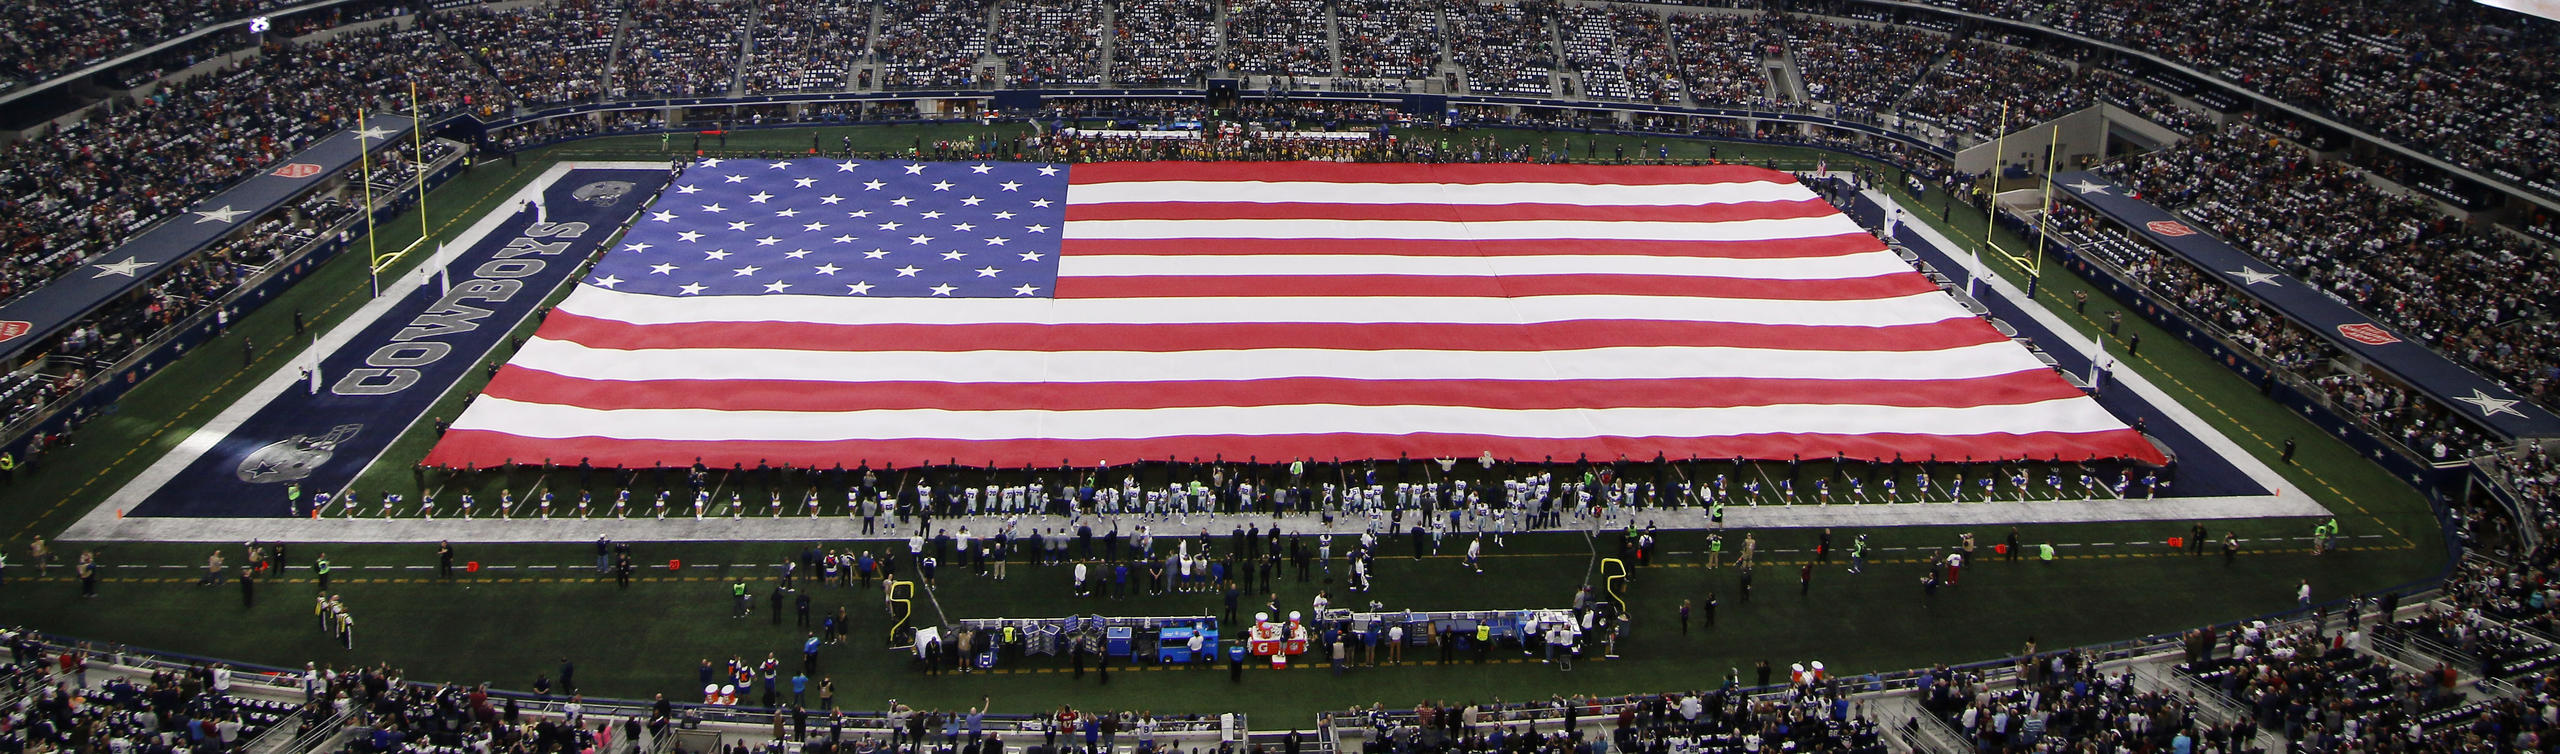 Emergency responders shown on the large video screen unfurl a large American flag inside AT&T stadium during the playing of the national anthem before an NFL football game between the Washington Redskins and Dallas Cowboys on Sunday, Jan. 3, 2016, in Arlington, Texas. The Cowboys were honoring first responders throughout the game. (AP Photo/Roger Steinman)